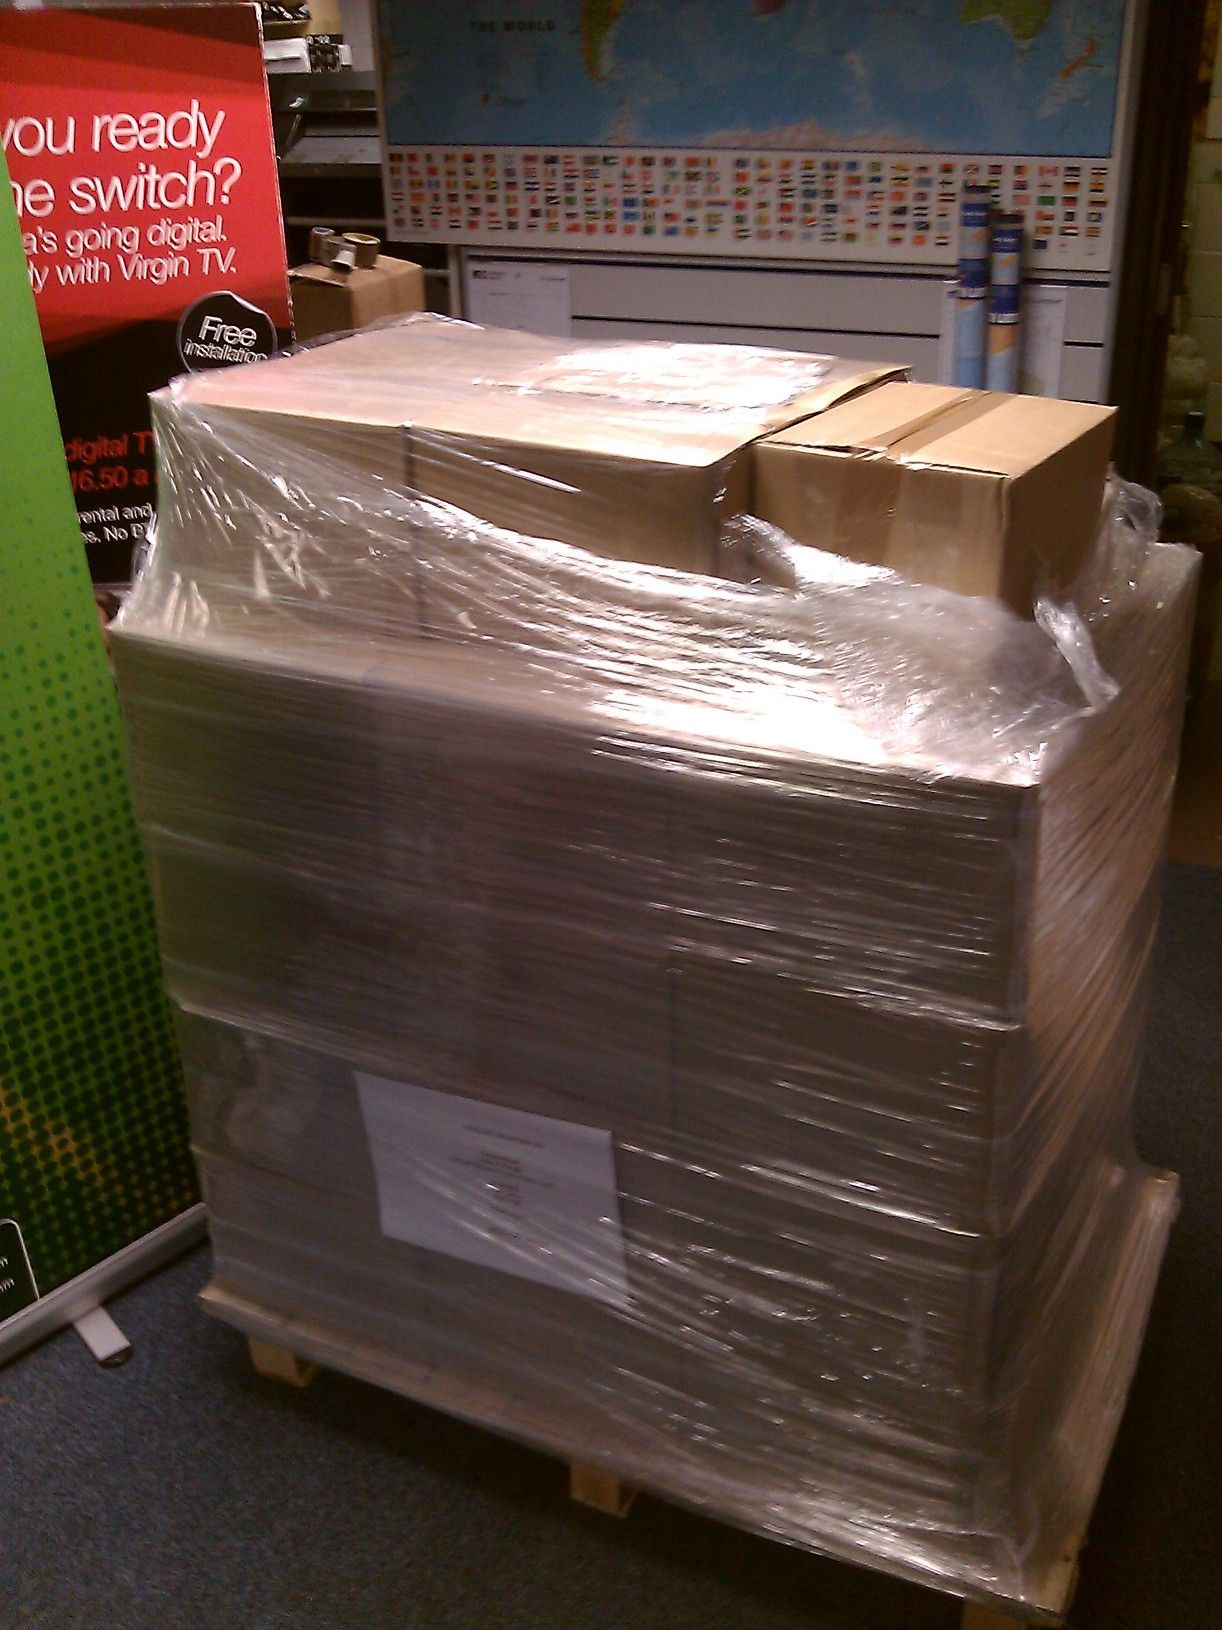 3000 copies of the Bletchley Park Times on their way!